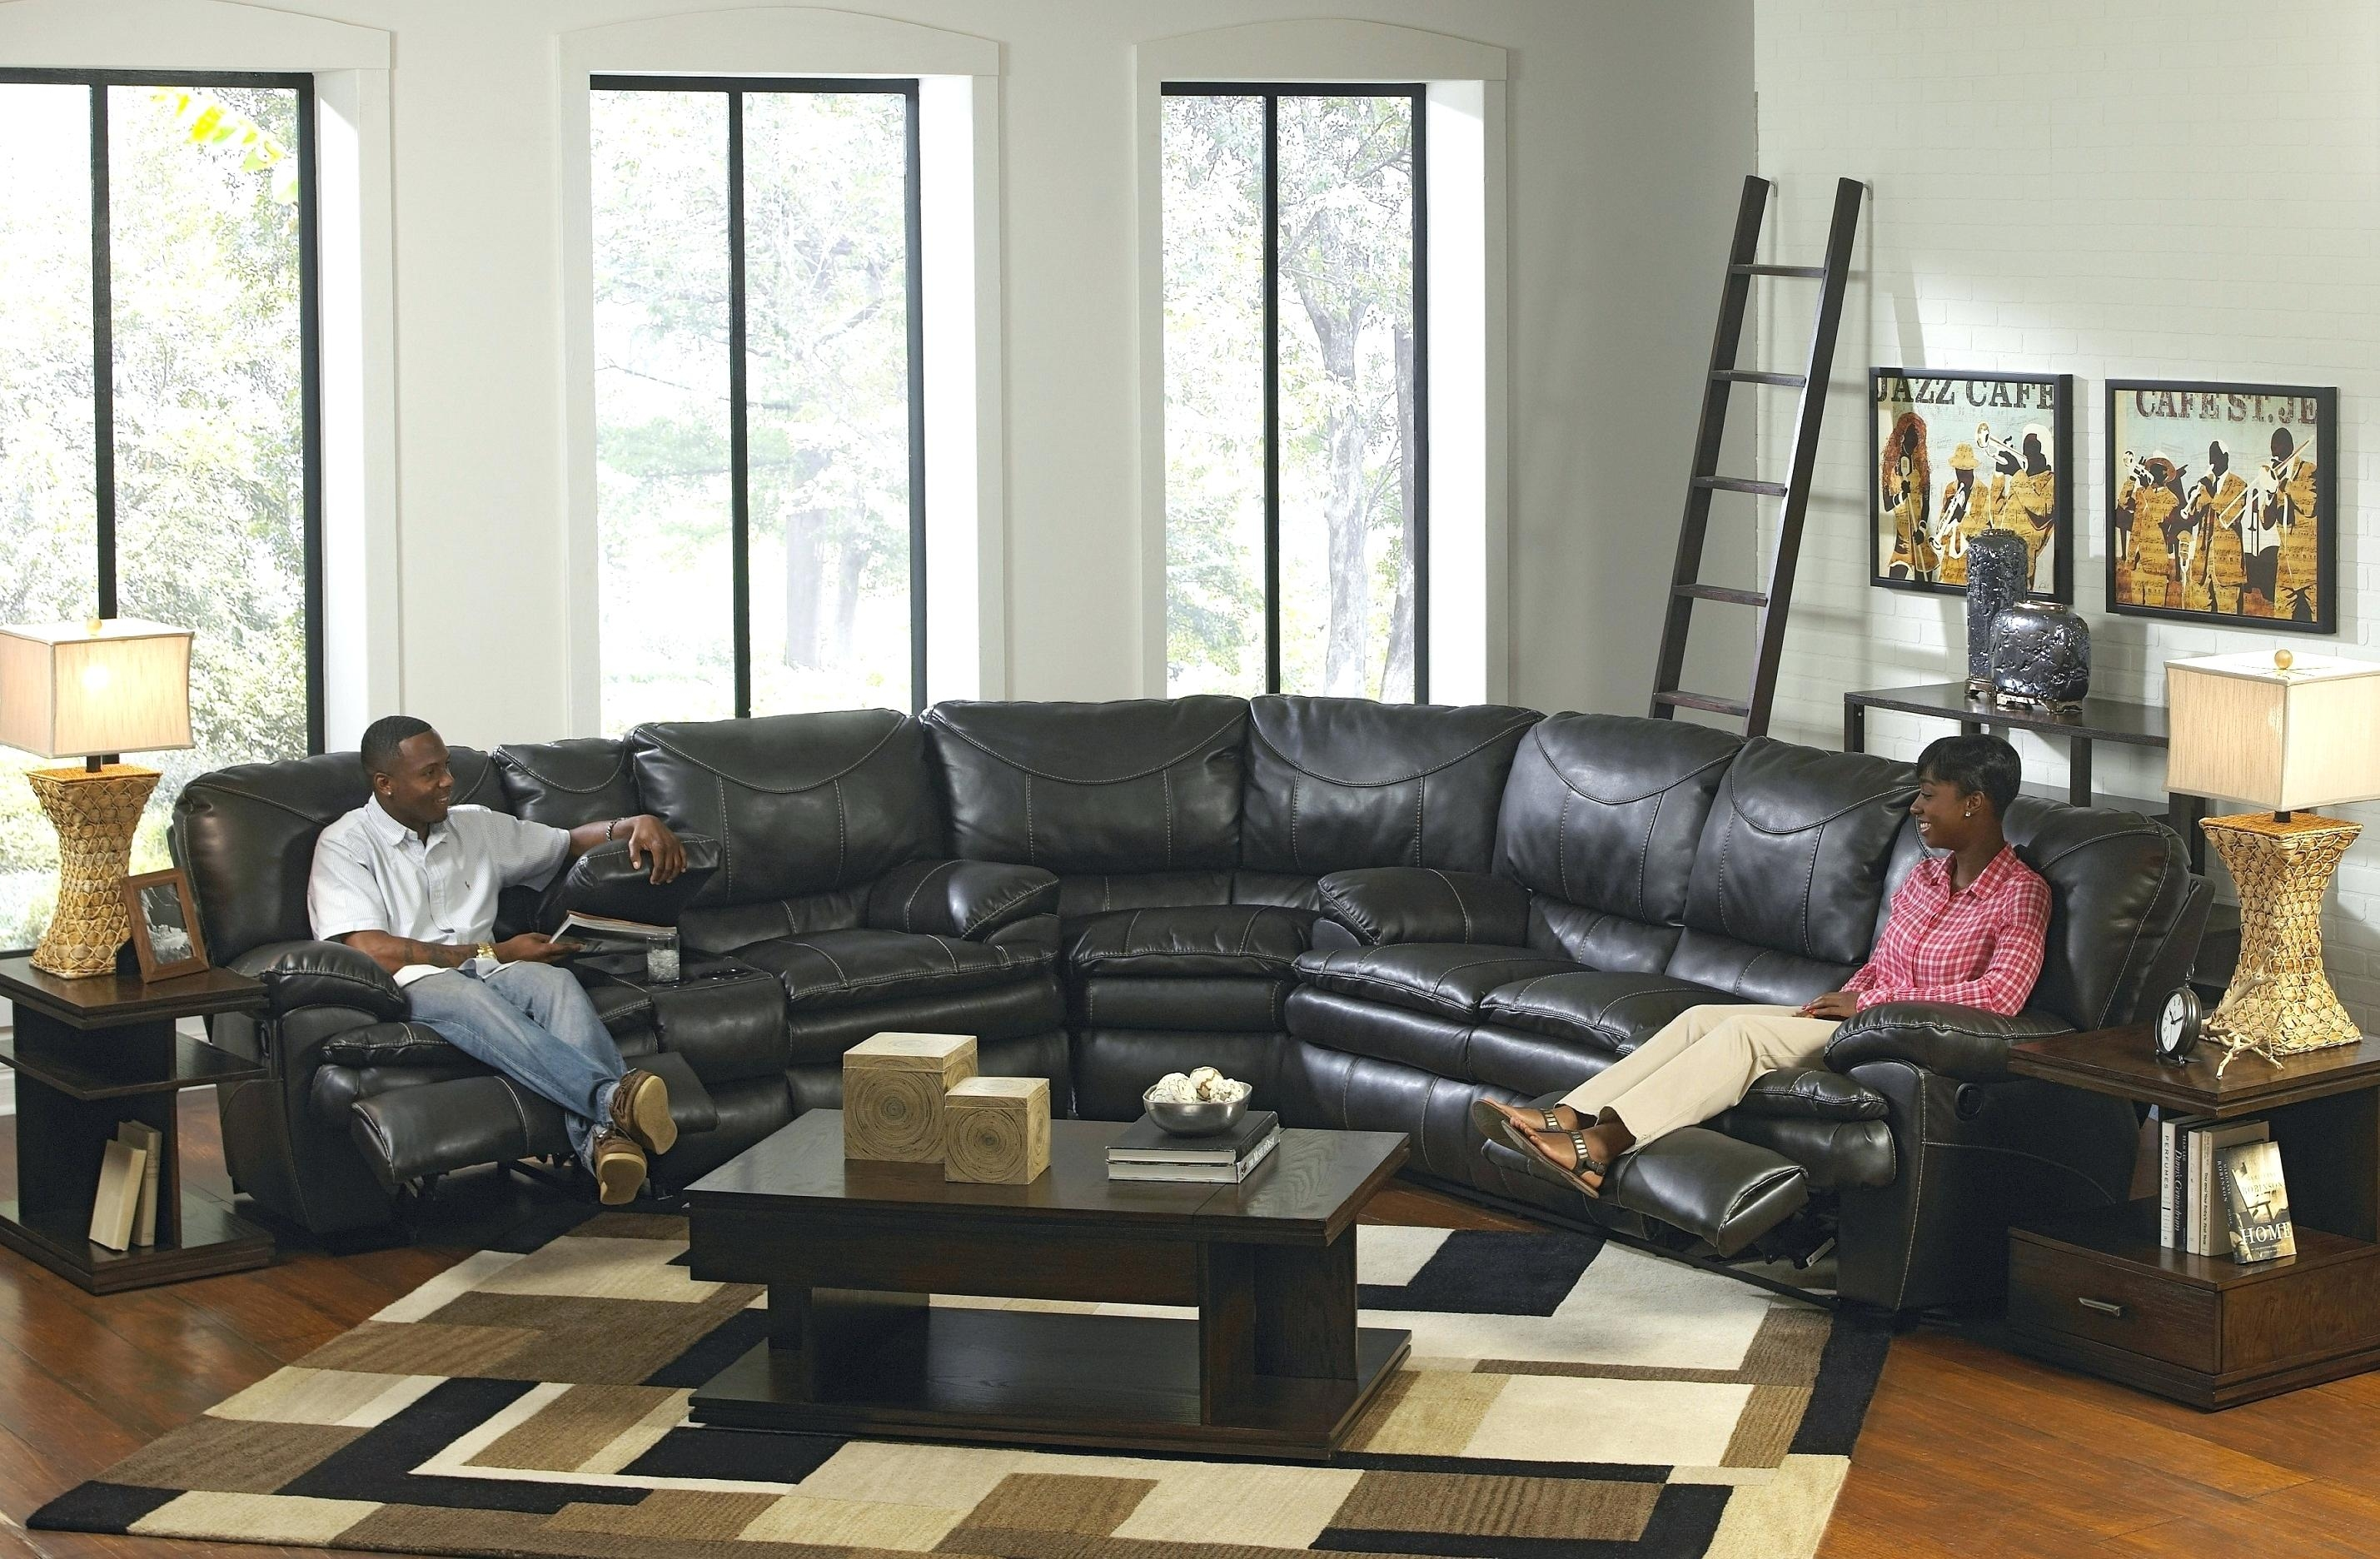 4 Seat Leather Sofa Costco Furniture And Brilliant Berkline Home Inside Berkline Sectional Sofa (Image 1 of 15)